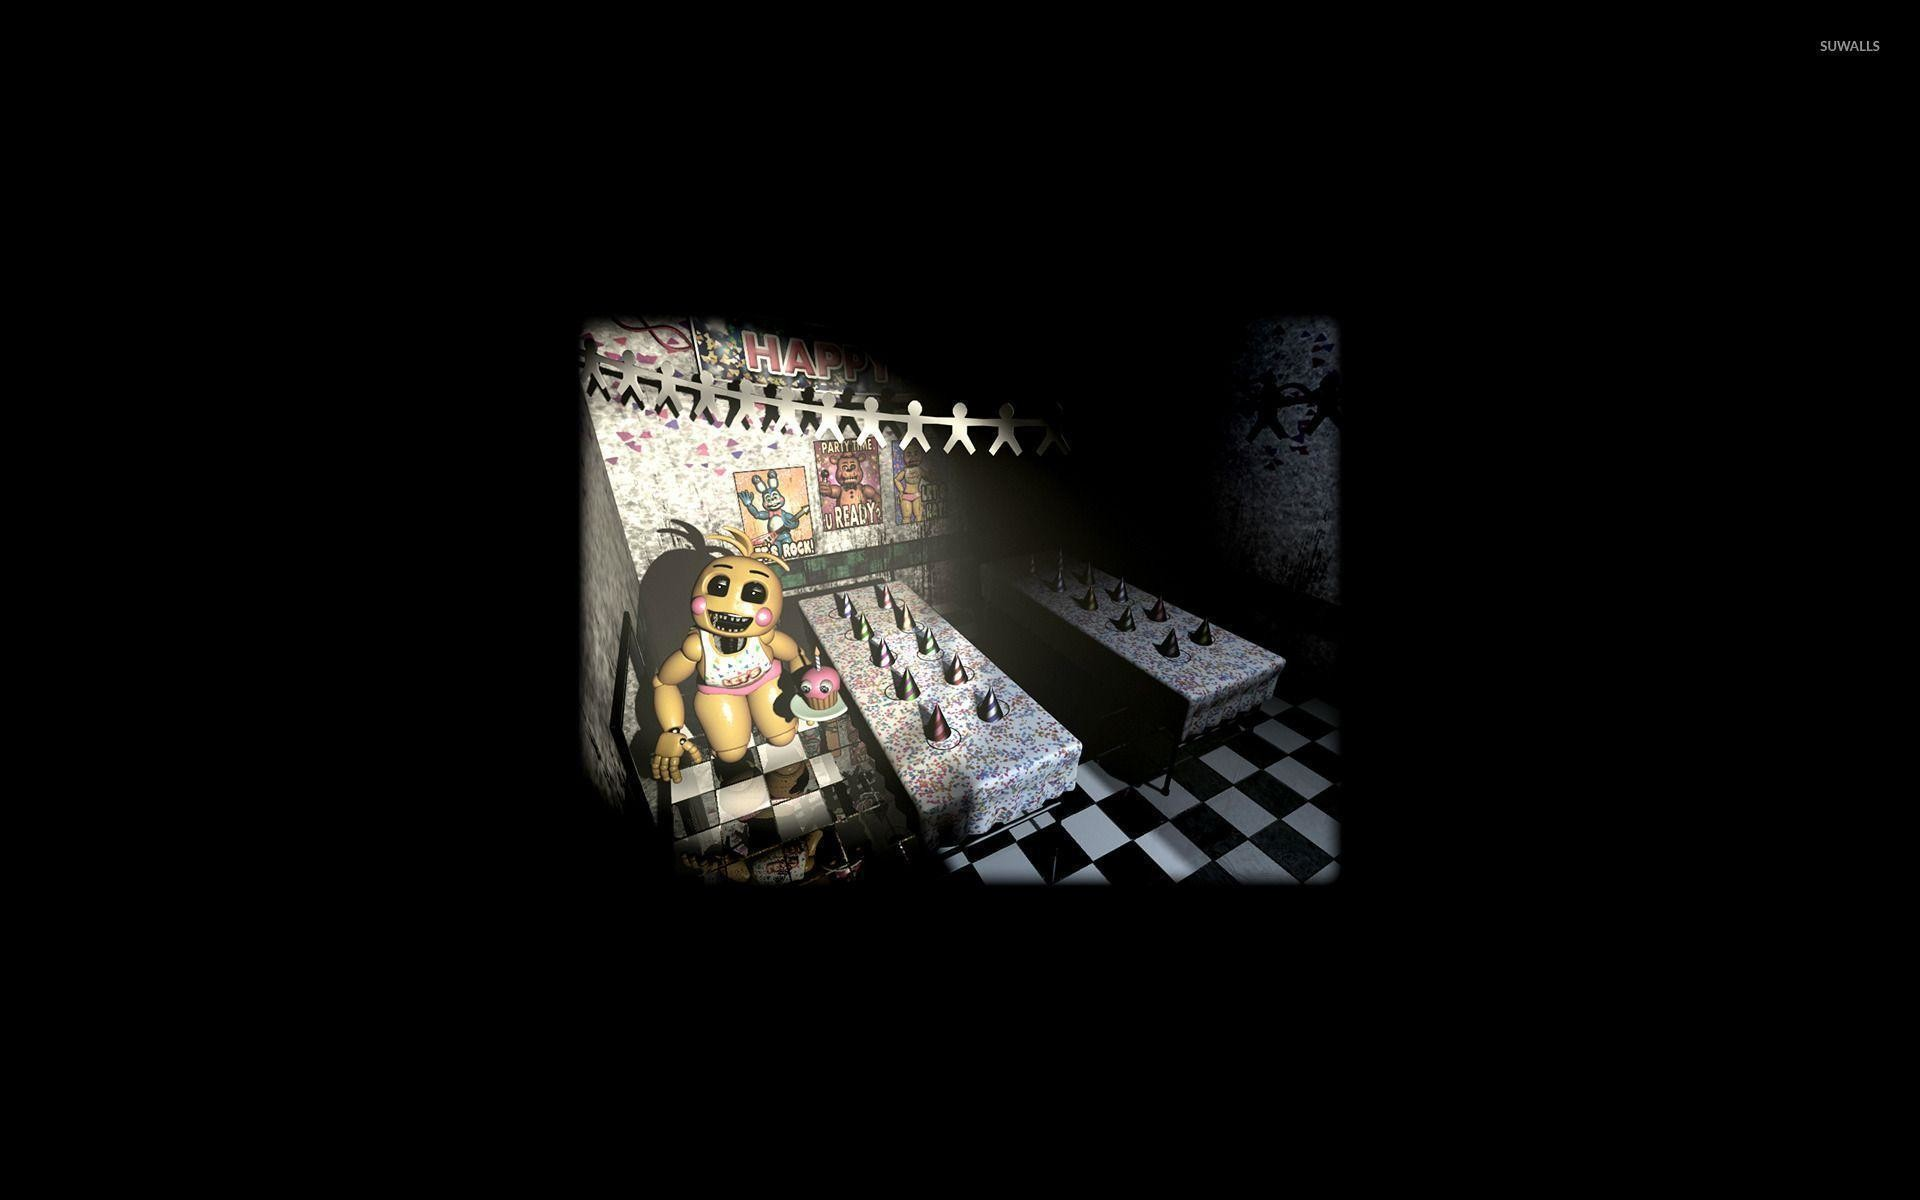 1920x1200 Five Nights at Freddy's wallpaper - Game wallpapers - #35600